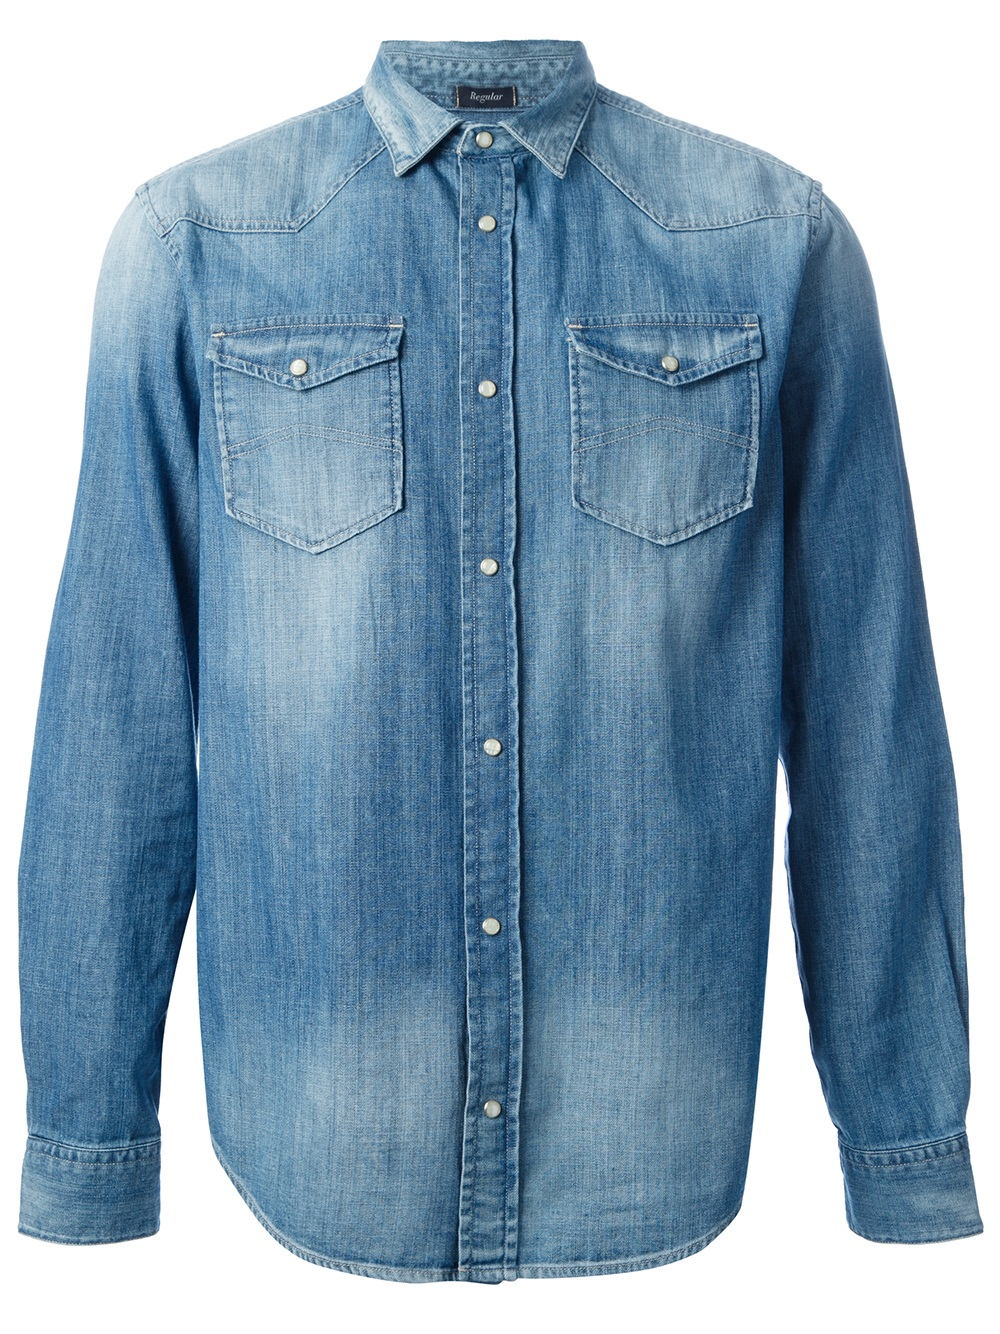 Buy Cheap 100% Guaranteed DENIM - Denim shirts Armani Free Shipping Eastbay Limited Edition Sale Online Sale 2018 With Mastercard ILCM40